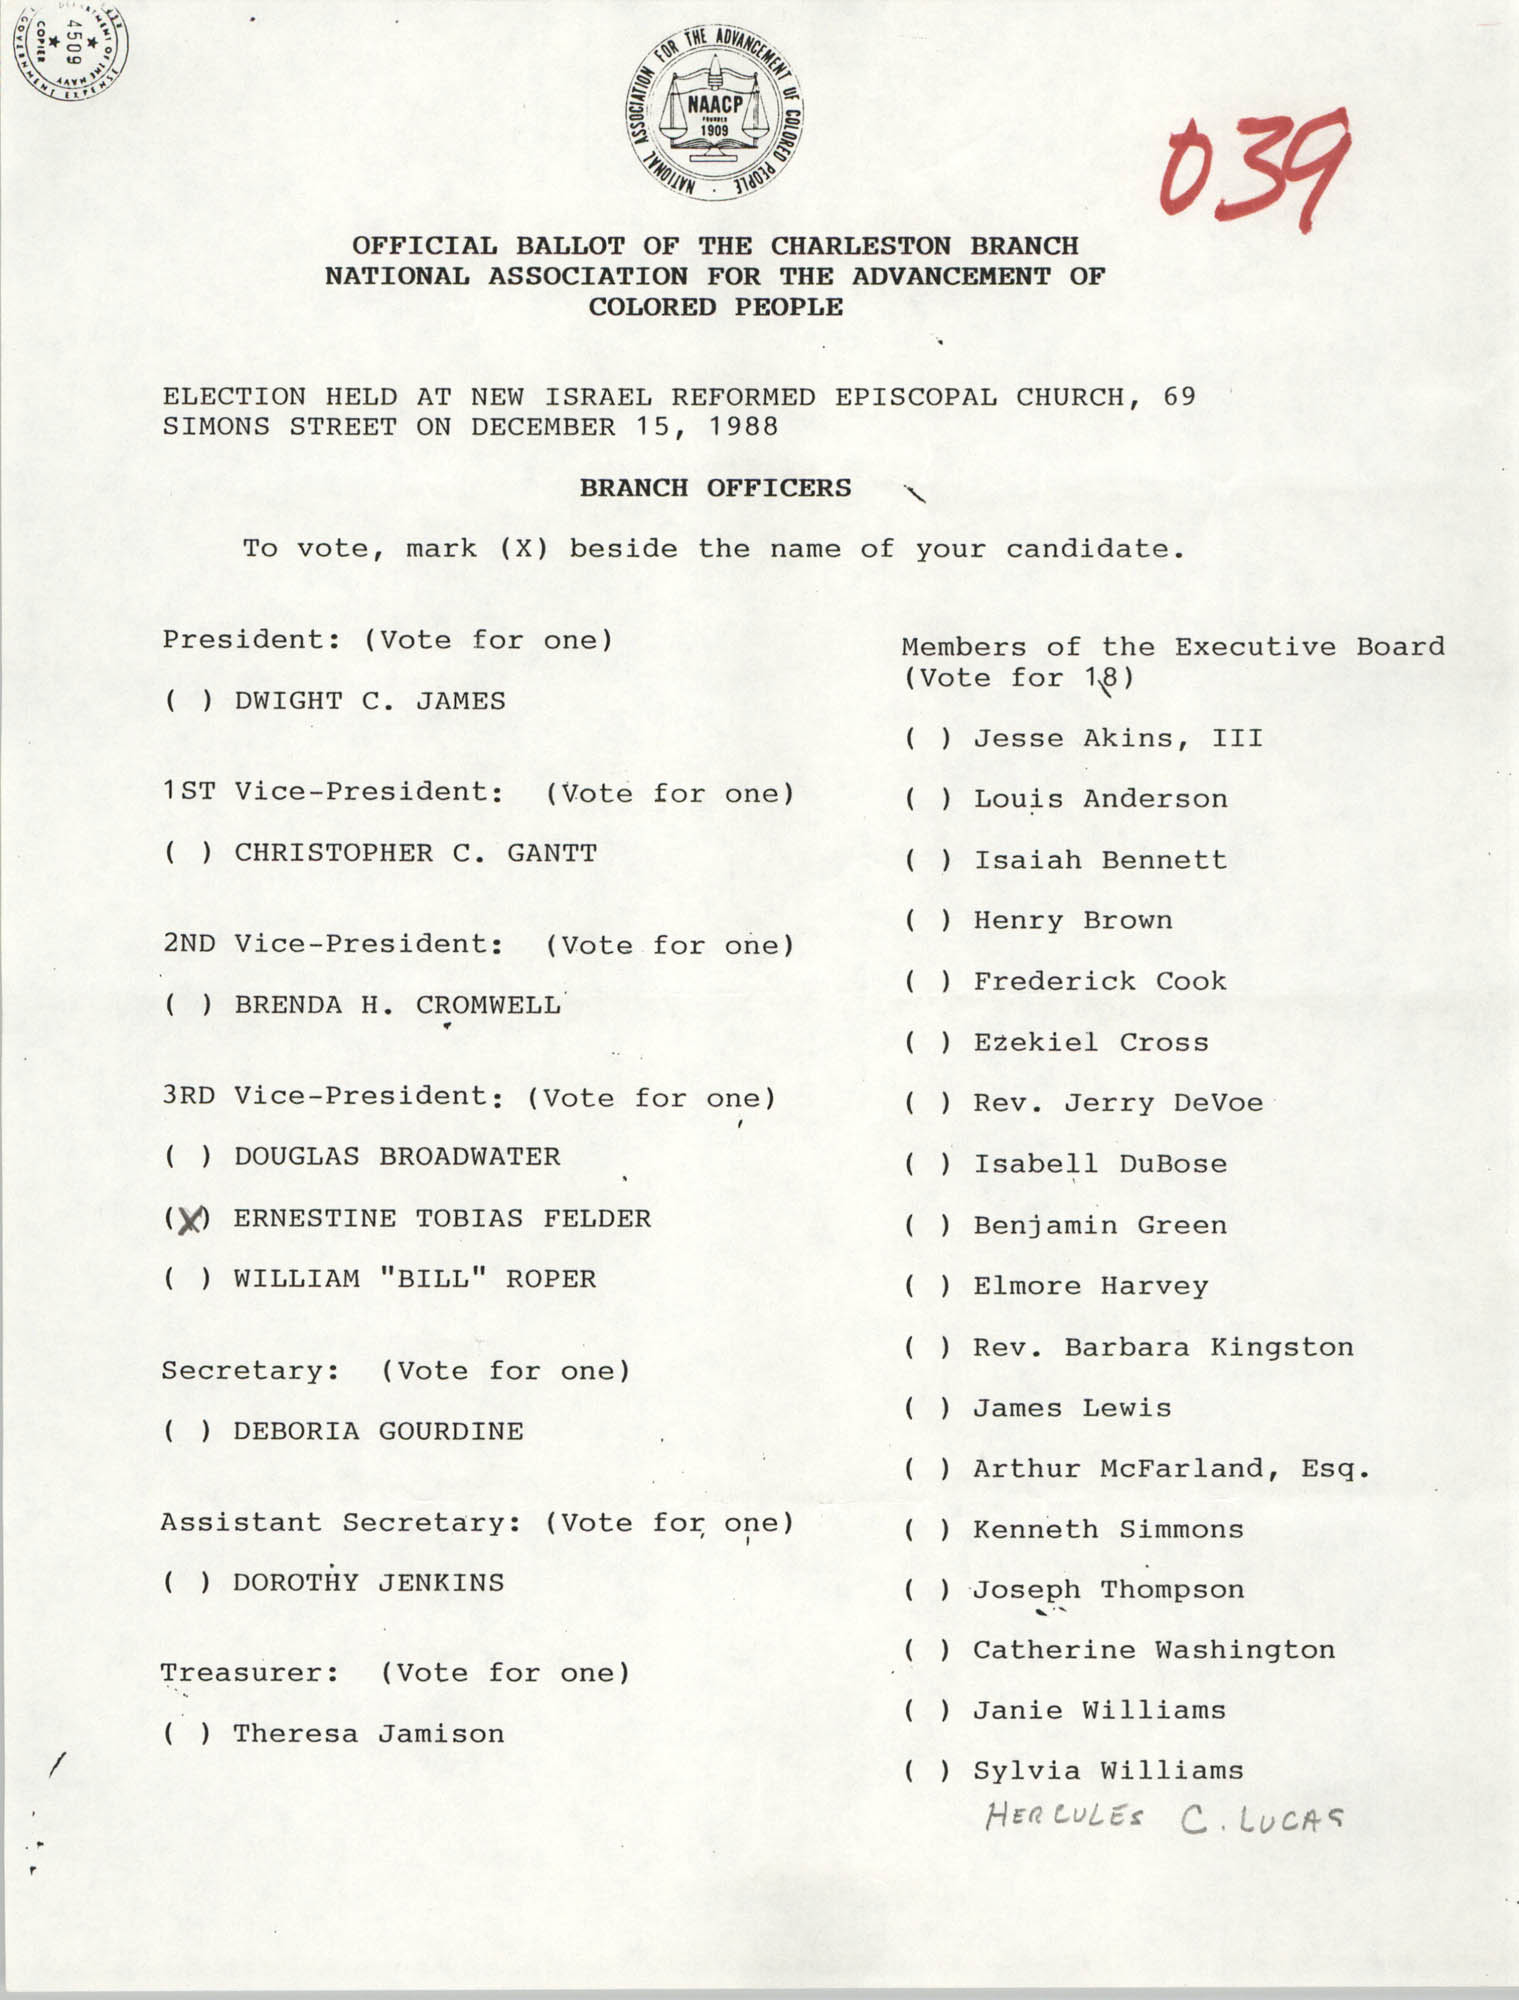 Official Ballot of the Charleston Branch of the NAACP, 039